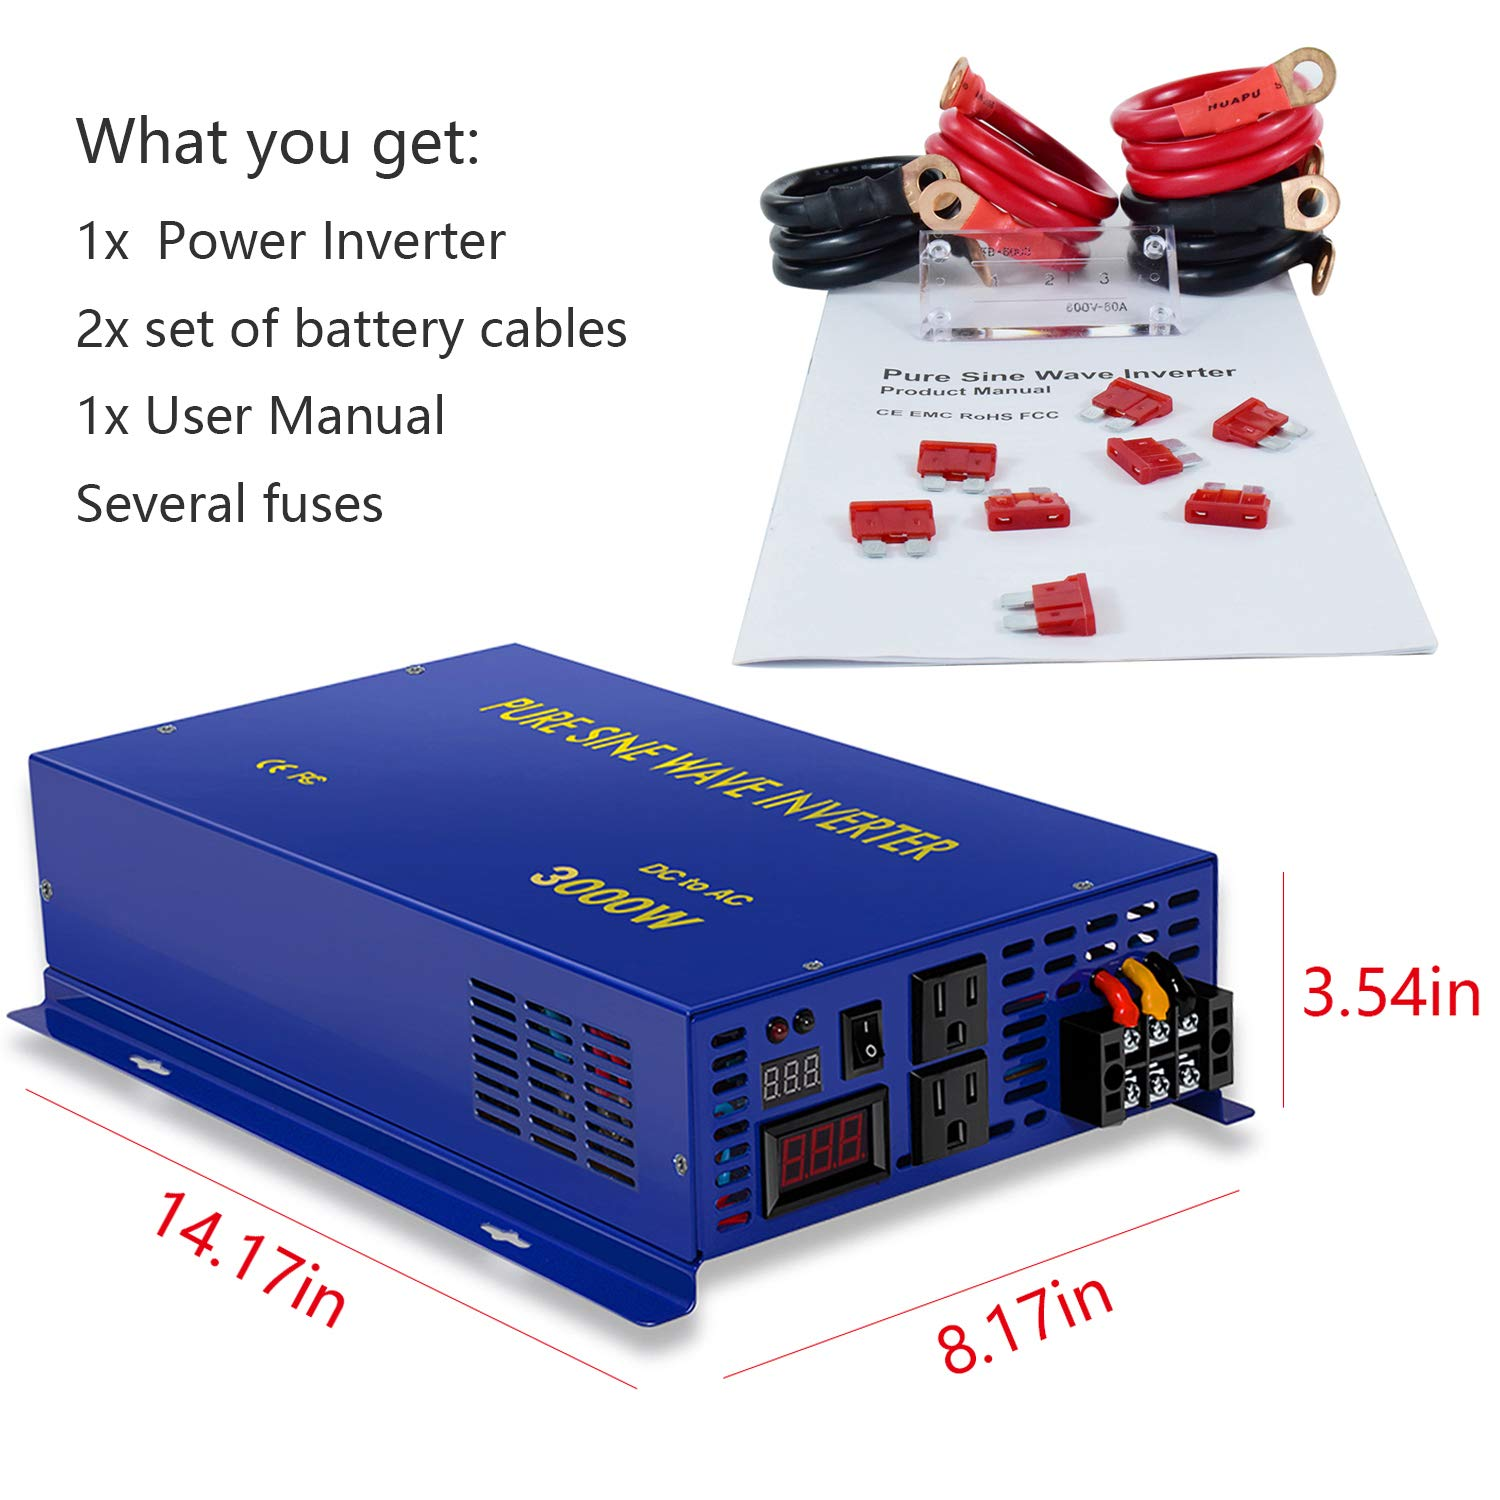 Xyz Invt 3000w Pure Sine Wave Power Inverter 12v Dc To Generator Circuit Schematic Diagram 120v Ac With 2 Outlets Set Of Battery Cables Converter For Home